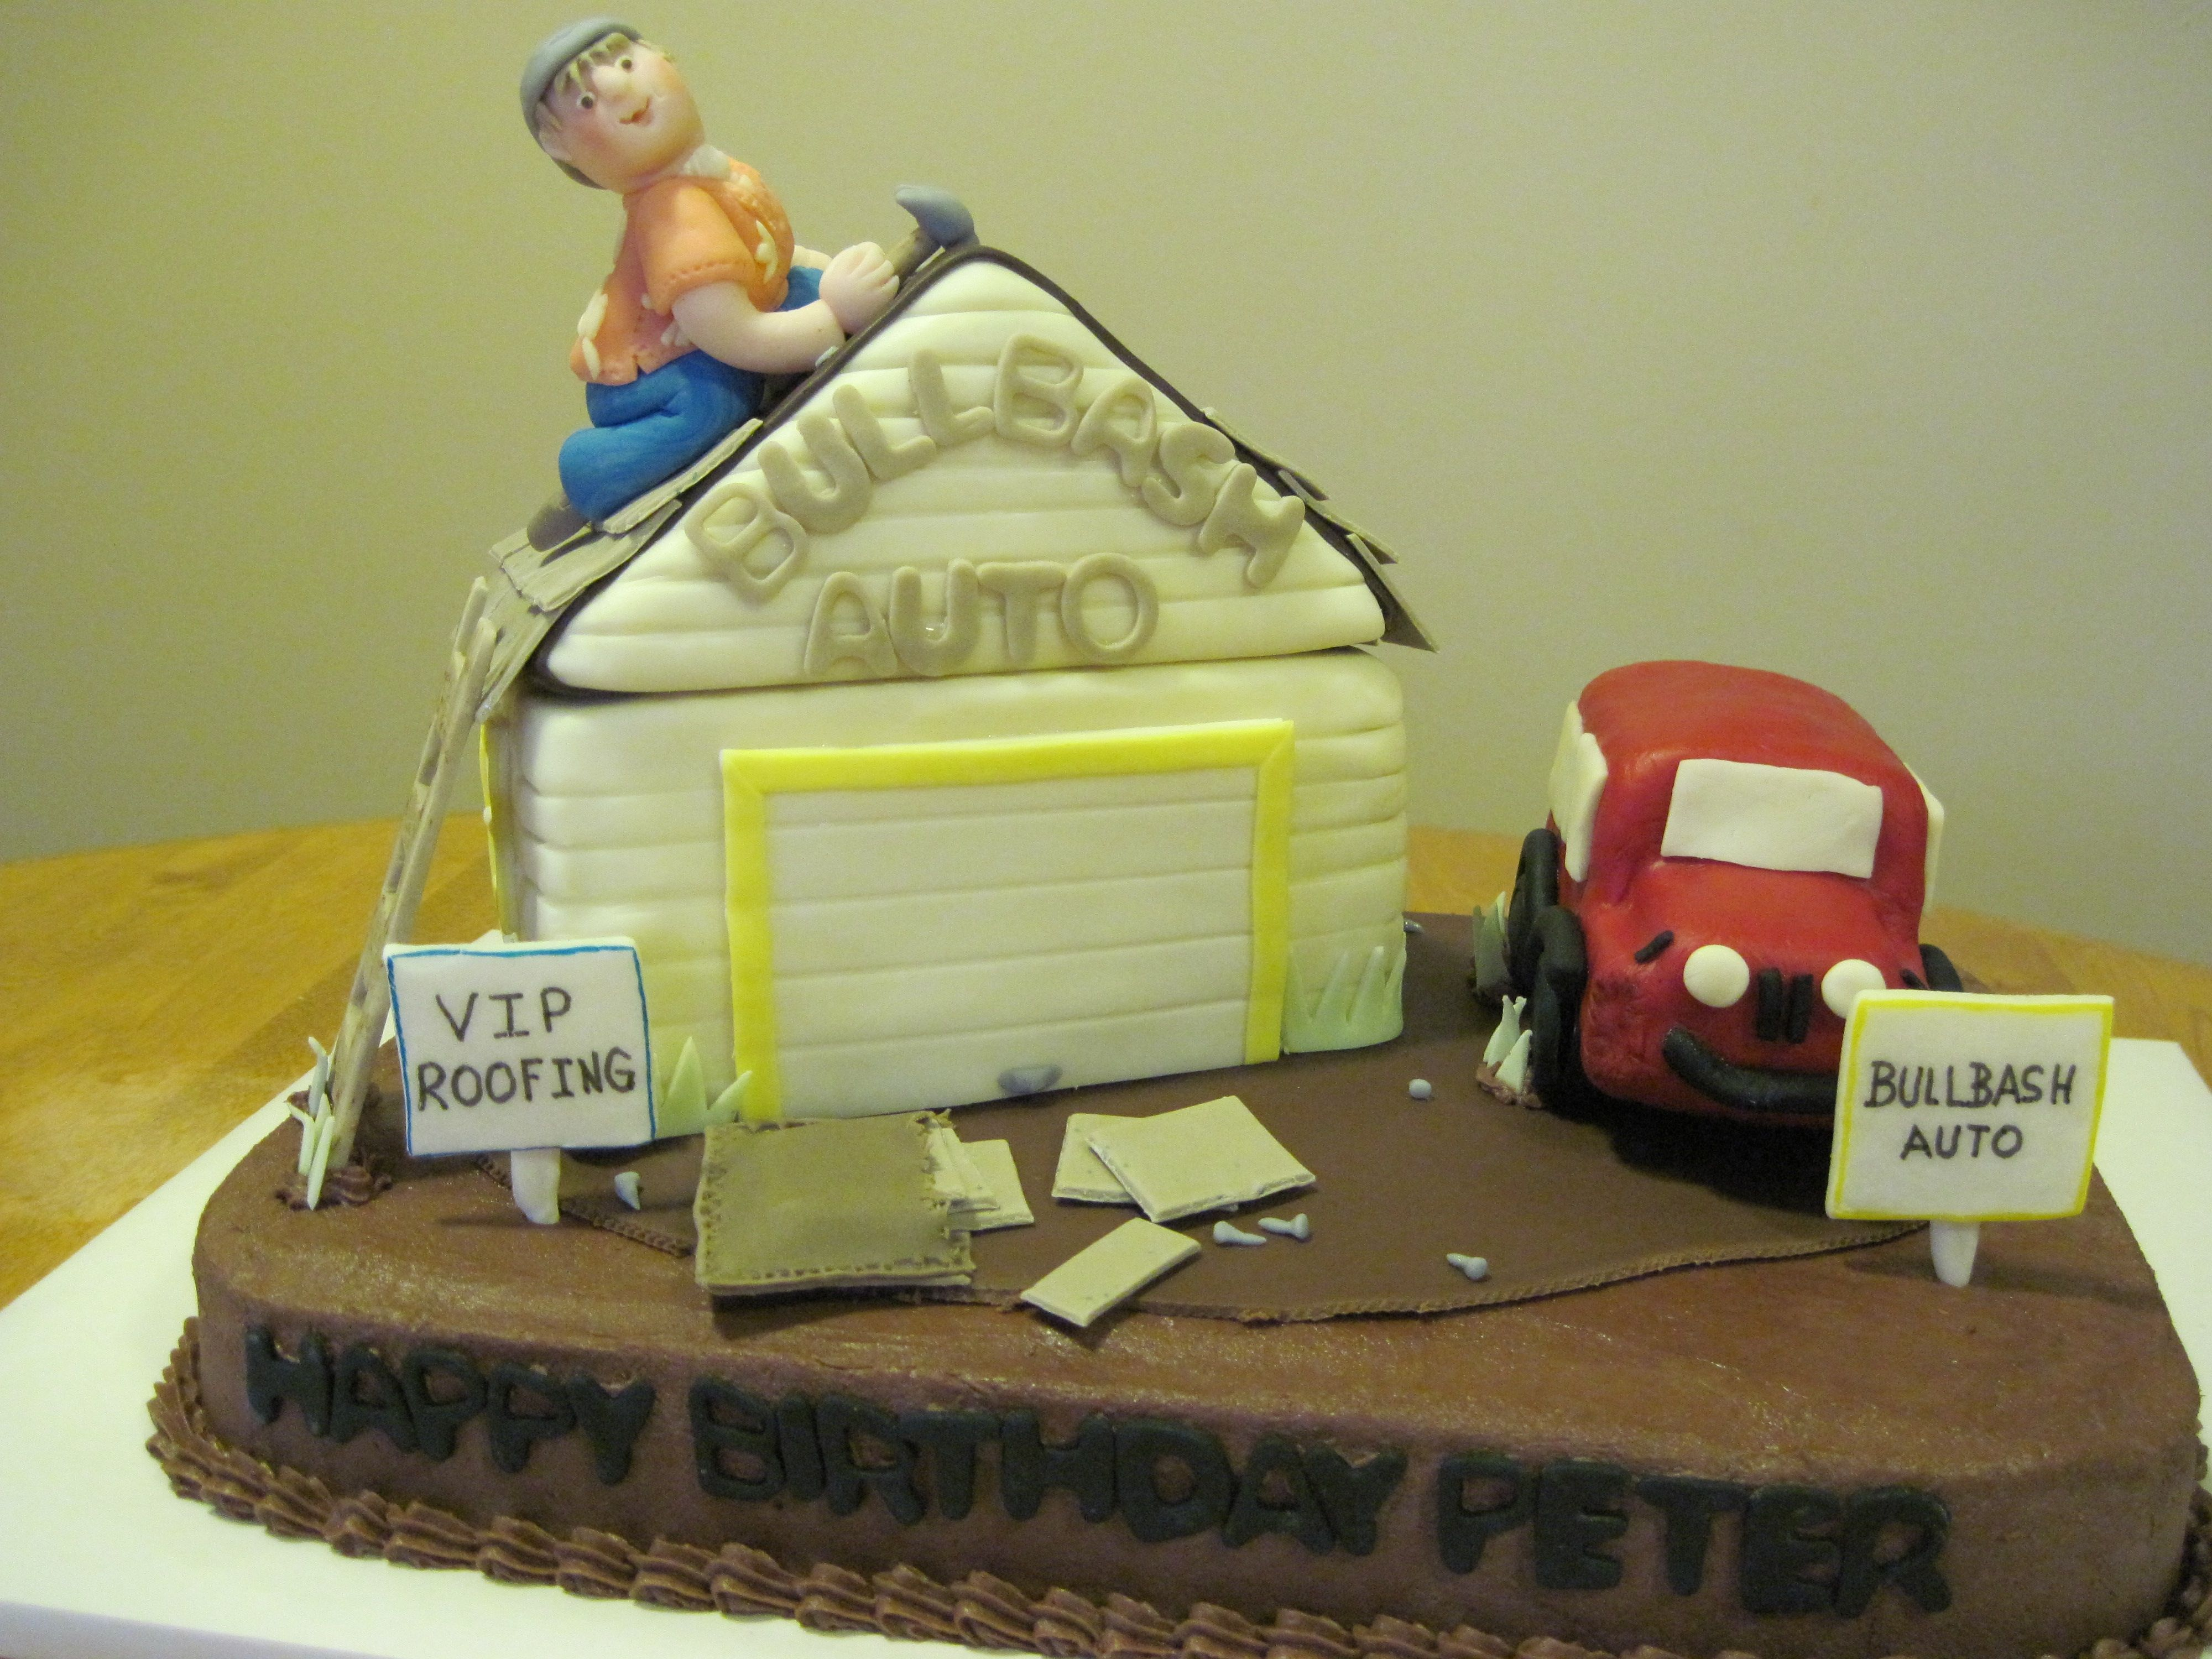 Roofin the Garage A birthday cake for a man who does roofing